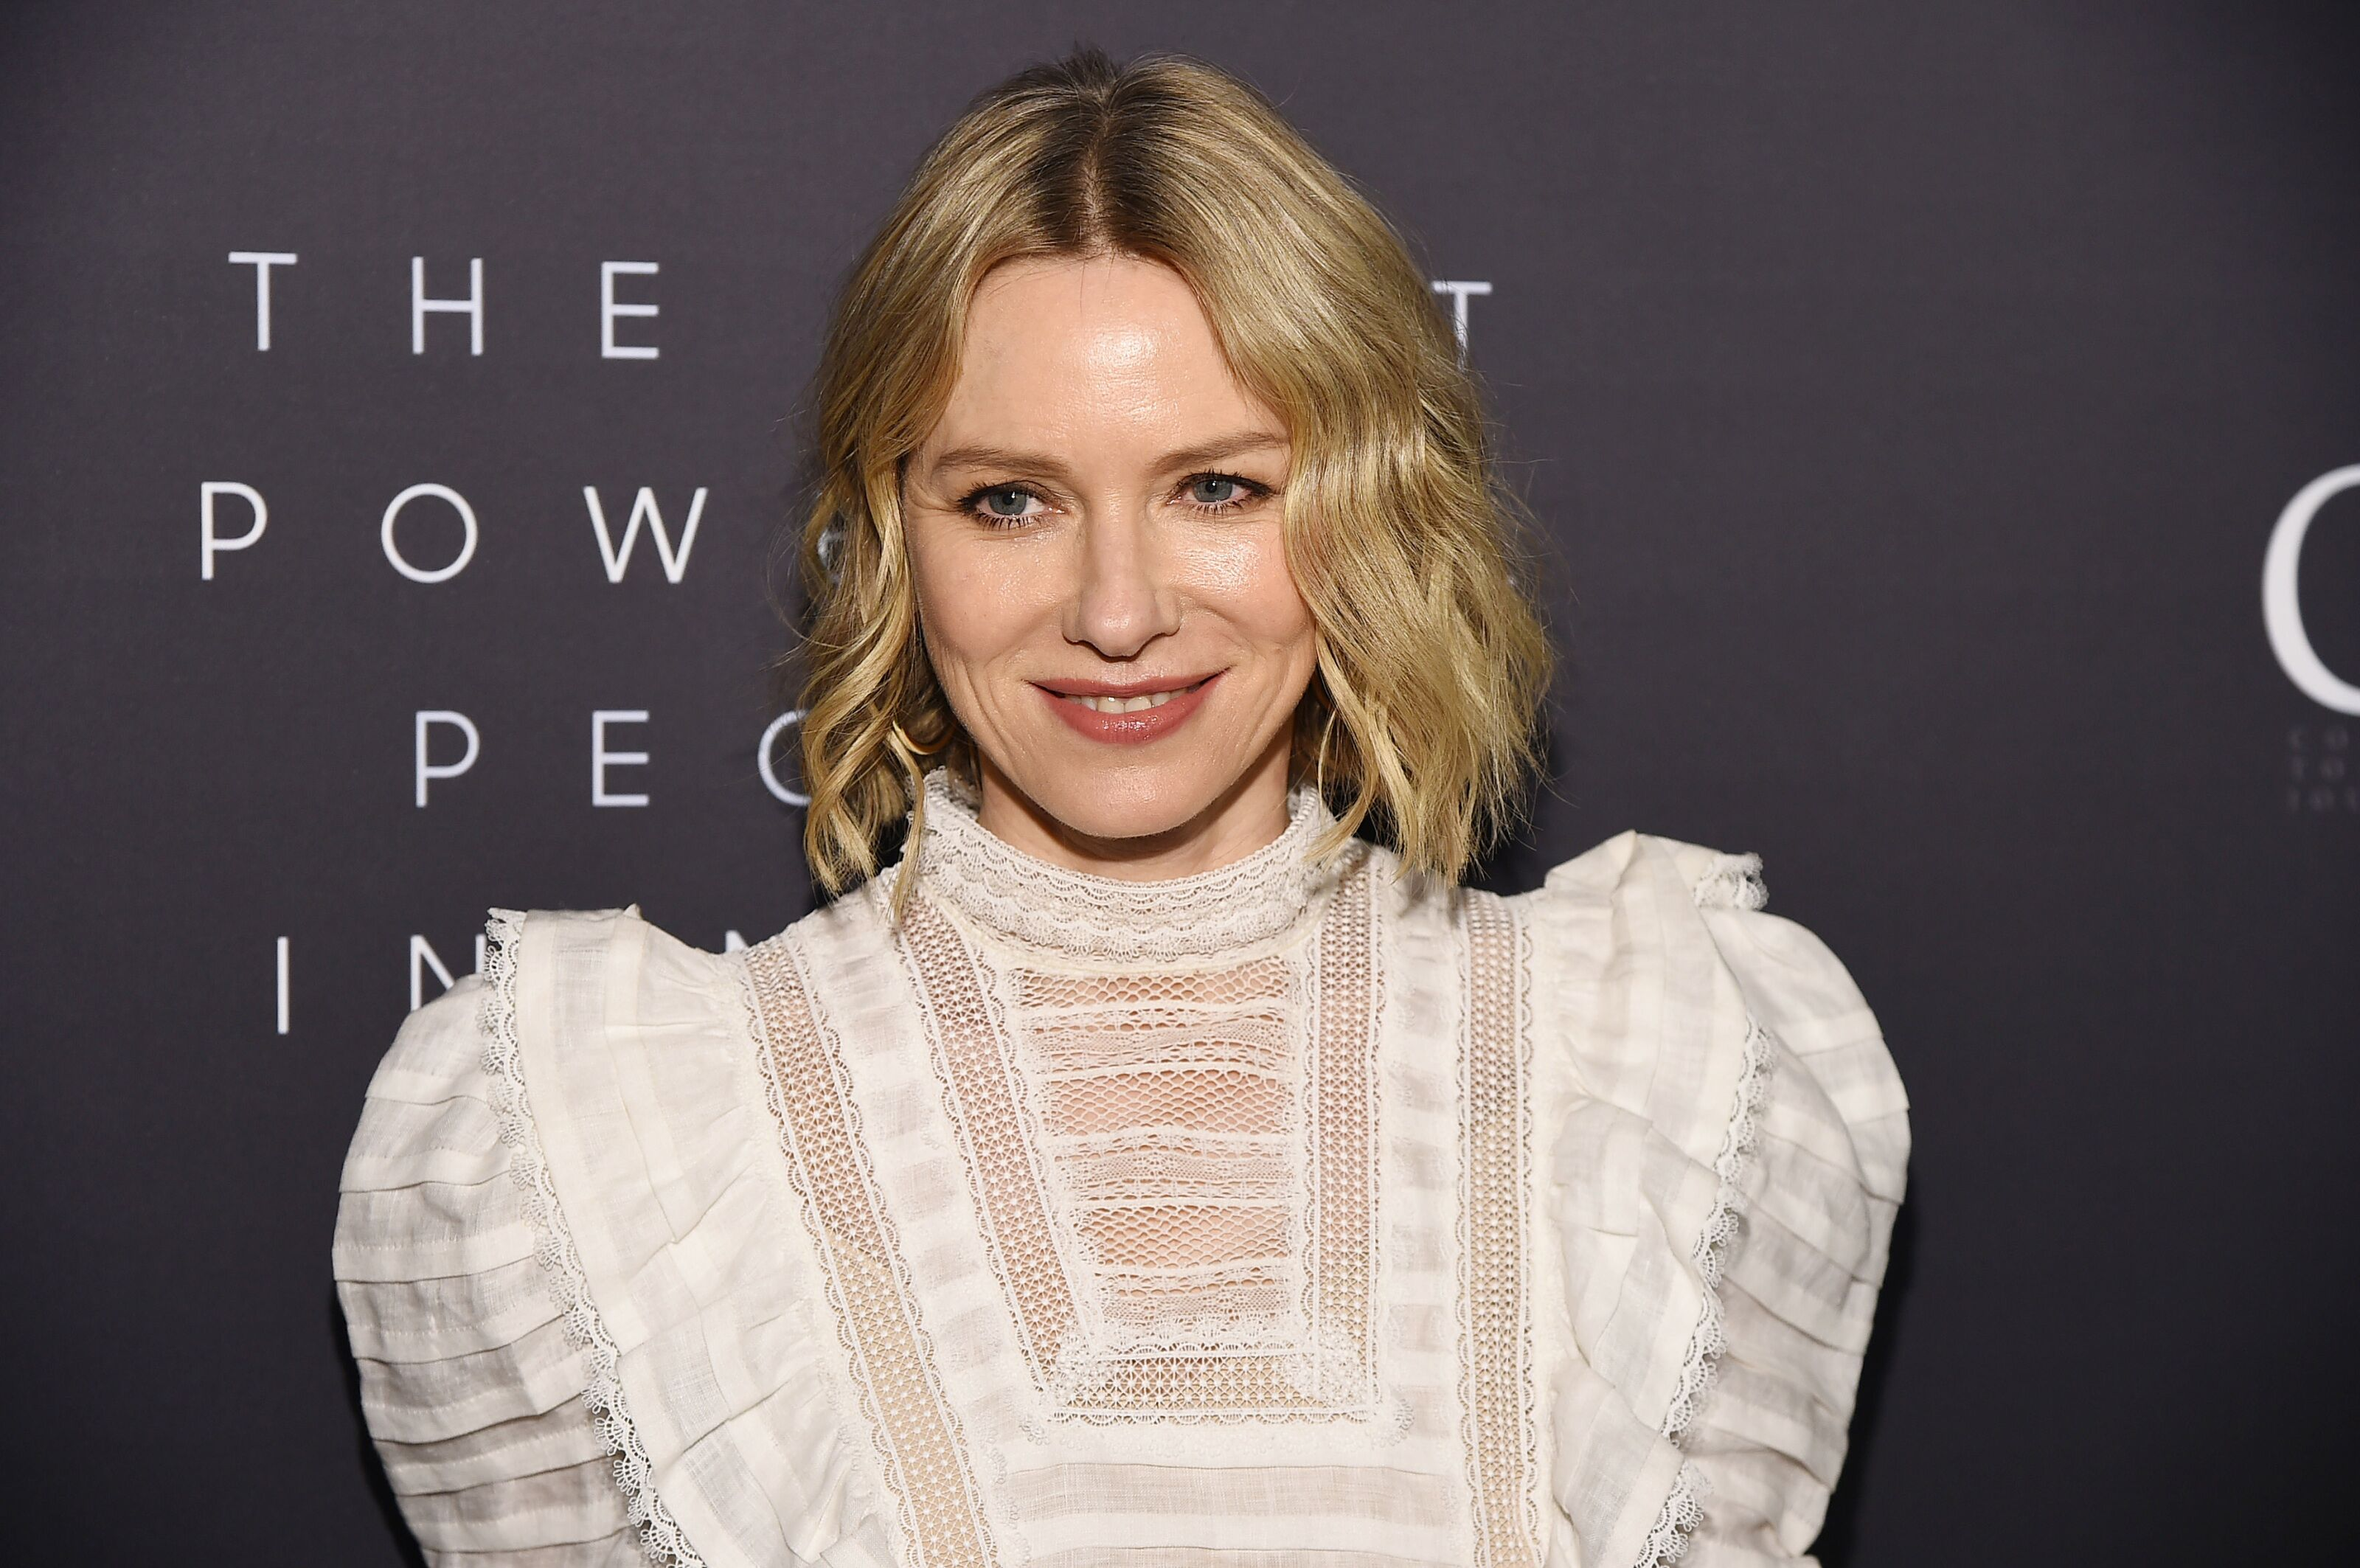 Naomi Watts compares Game of Thrones to Shakespeare; she's not wrong